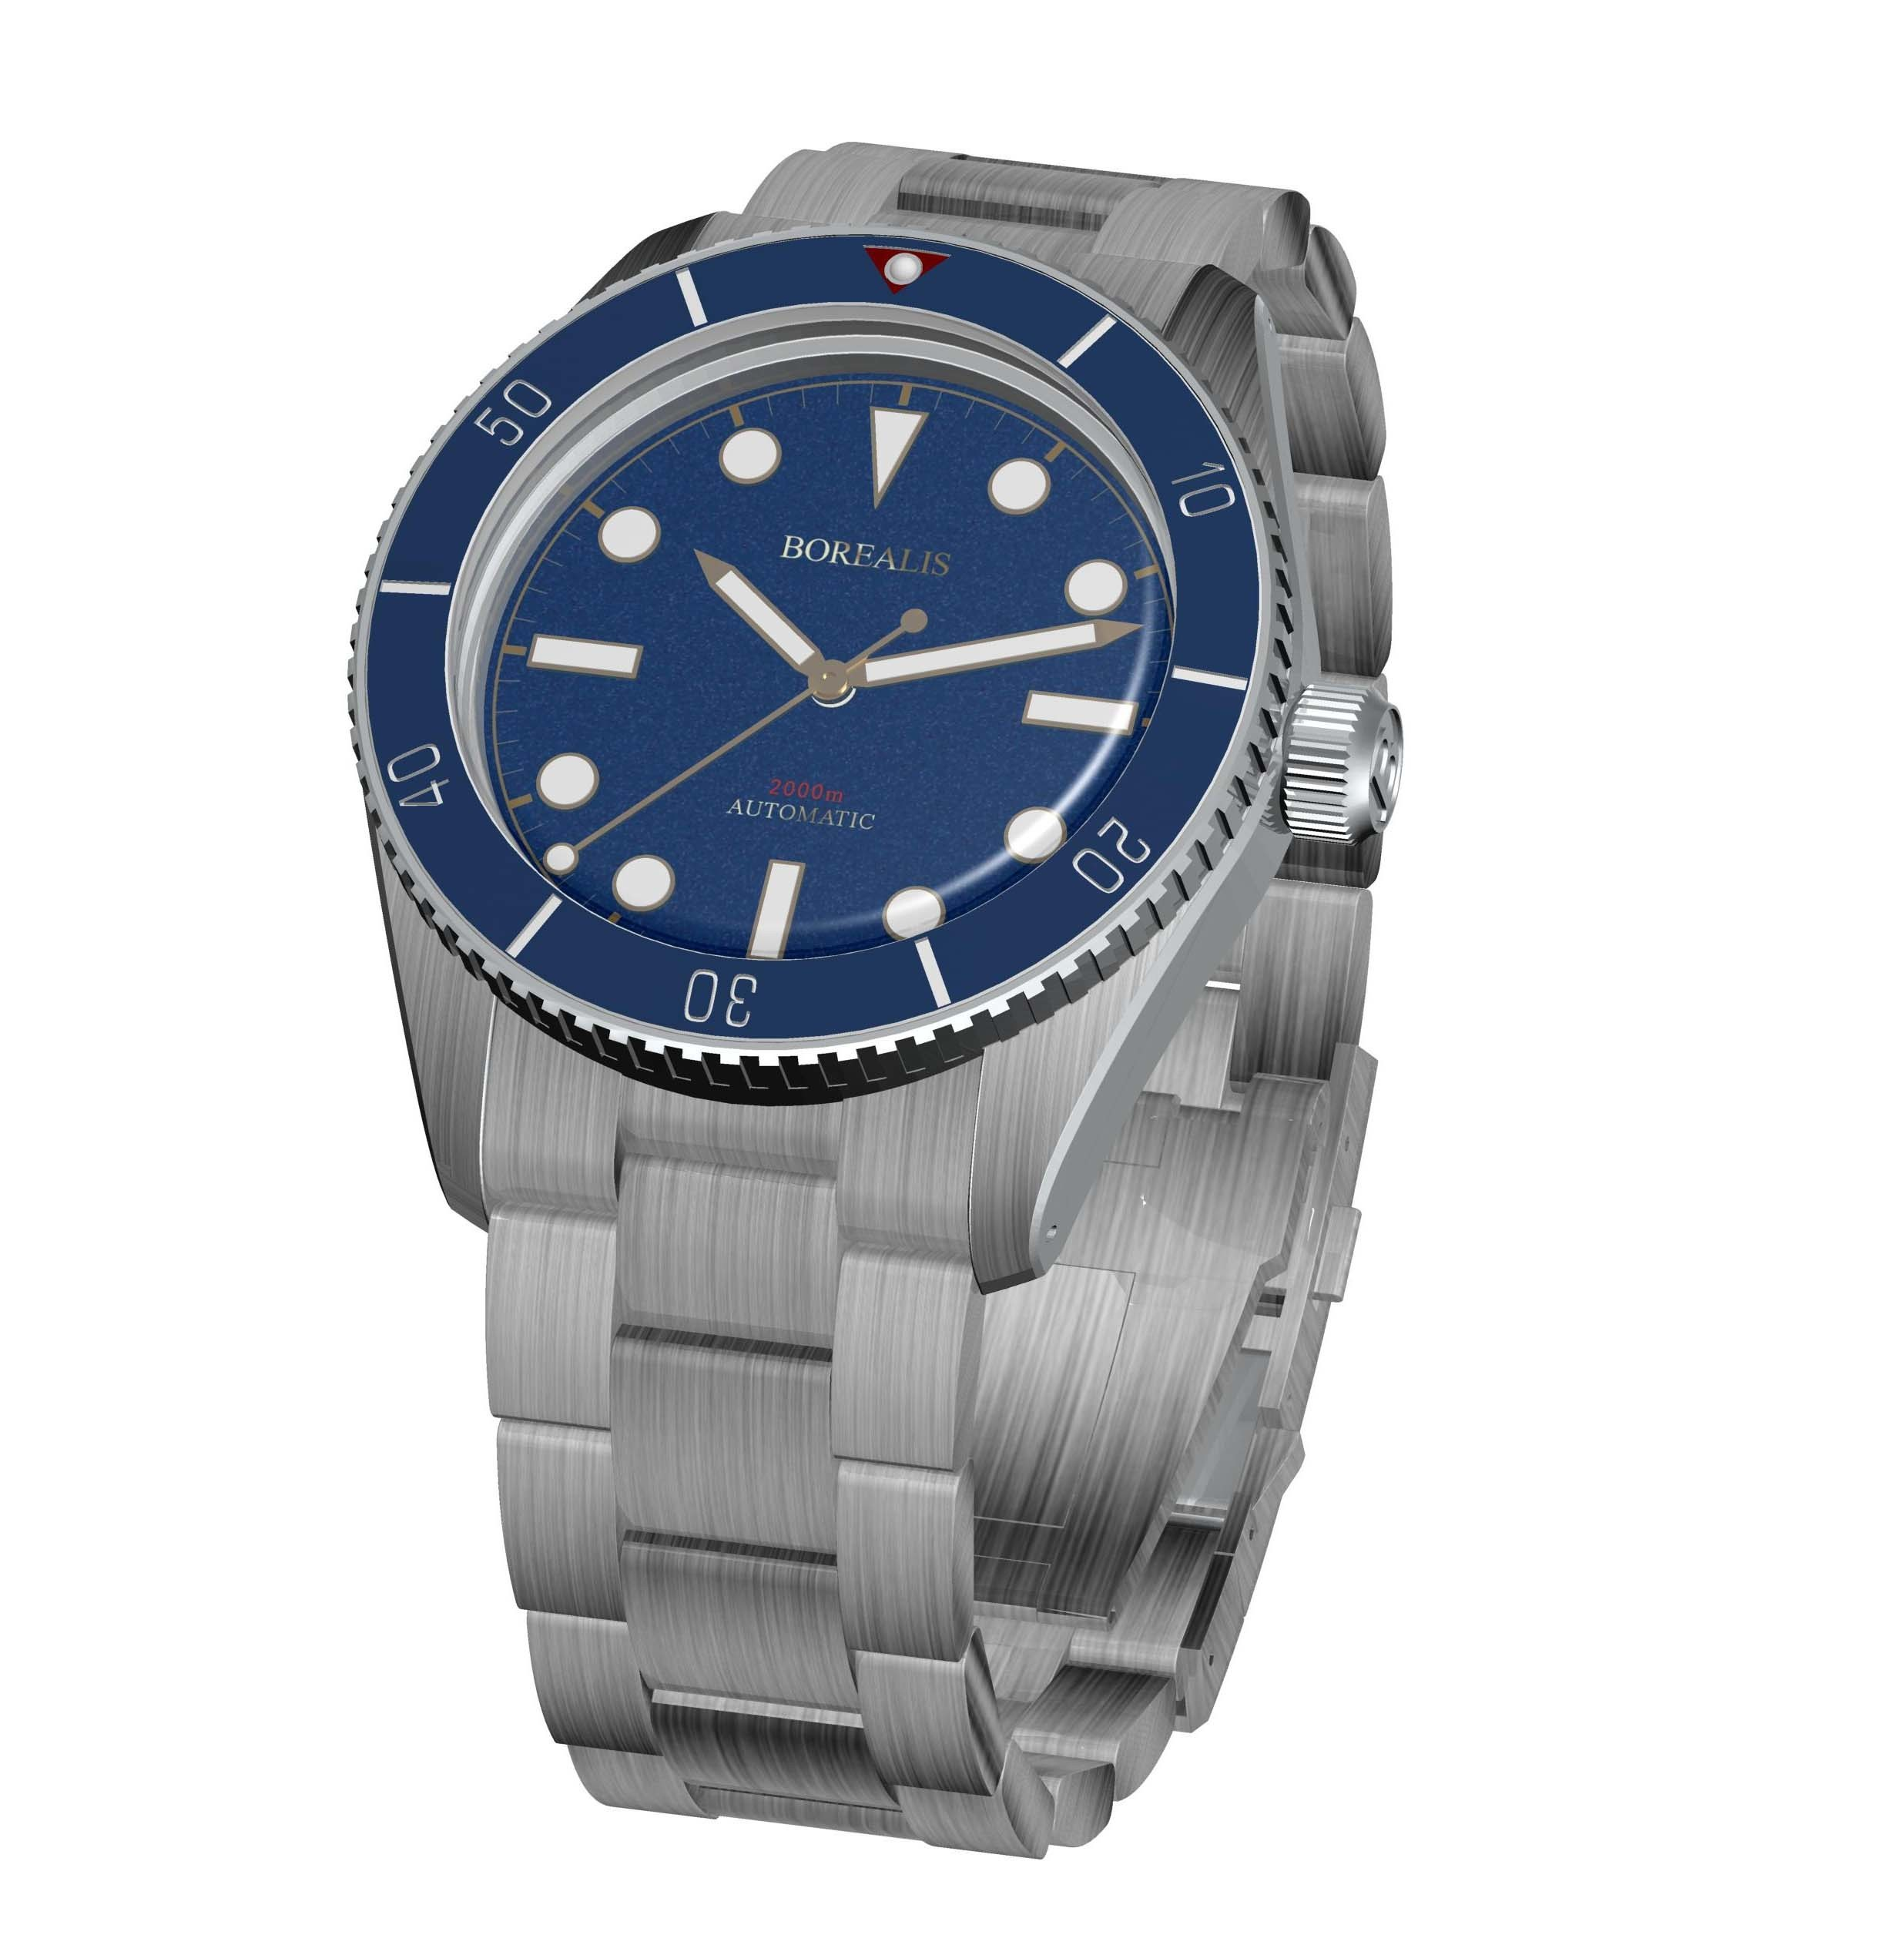 Borealis Bull Shark Automatic Diver Watch No Date Miyota 9015 Ceramic Blue Bezel Blue Dial